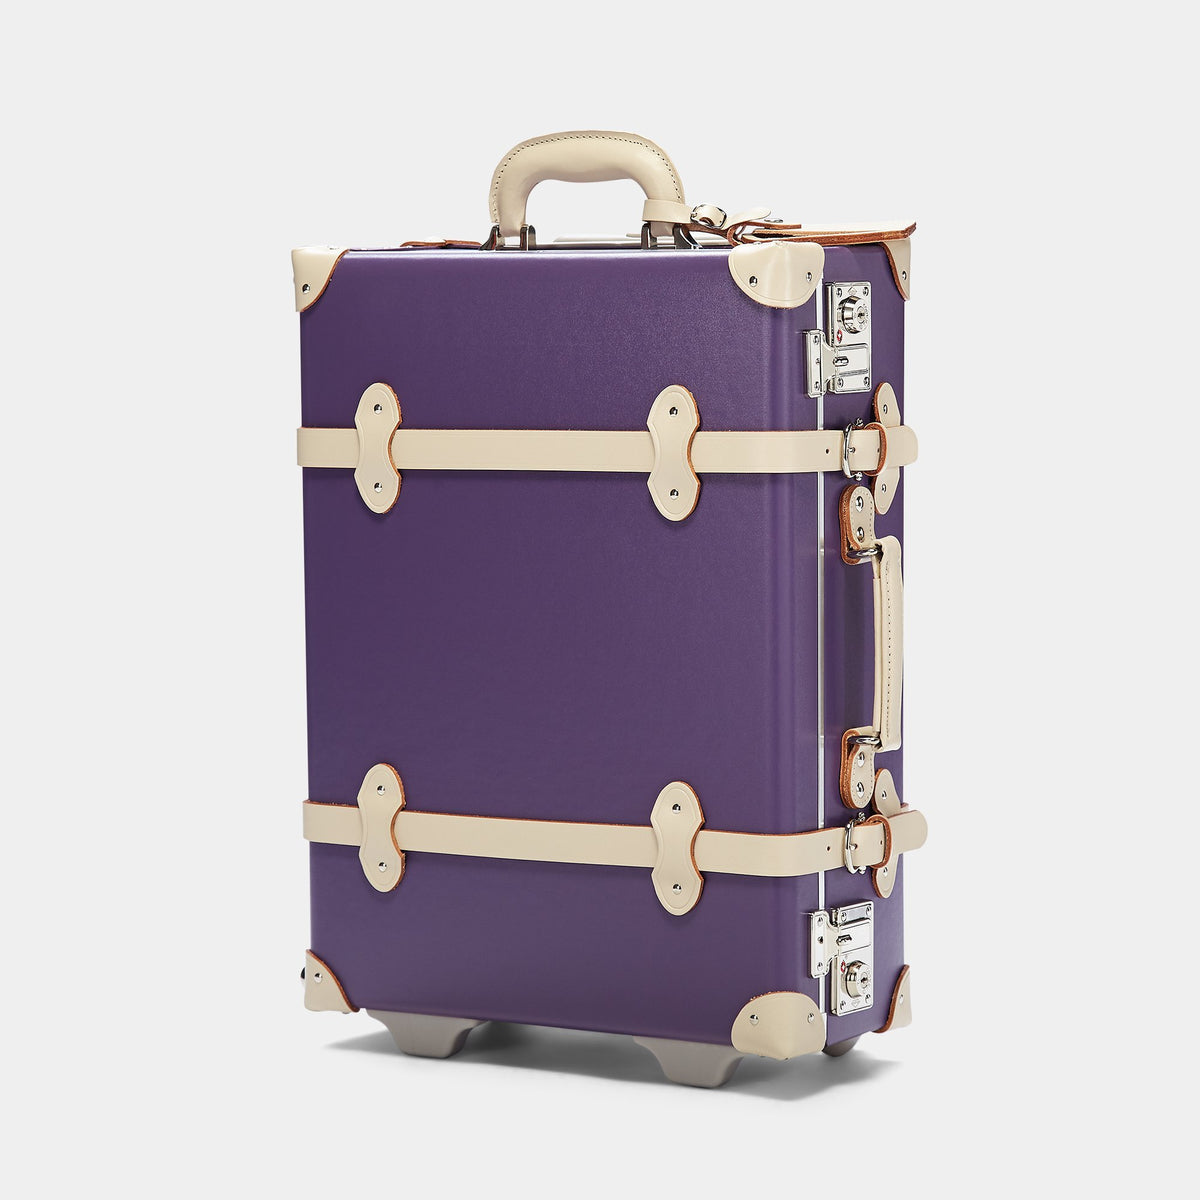 The Botanist - Purple Carryon